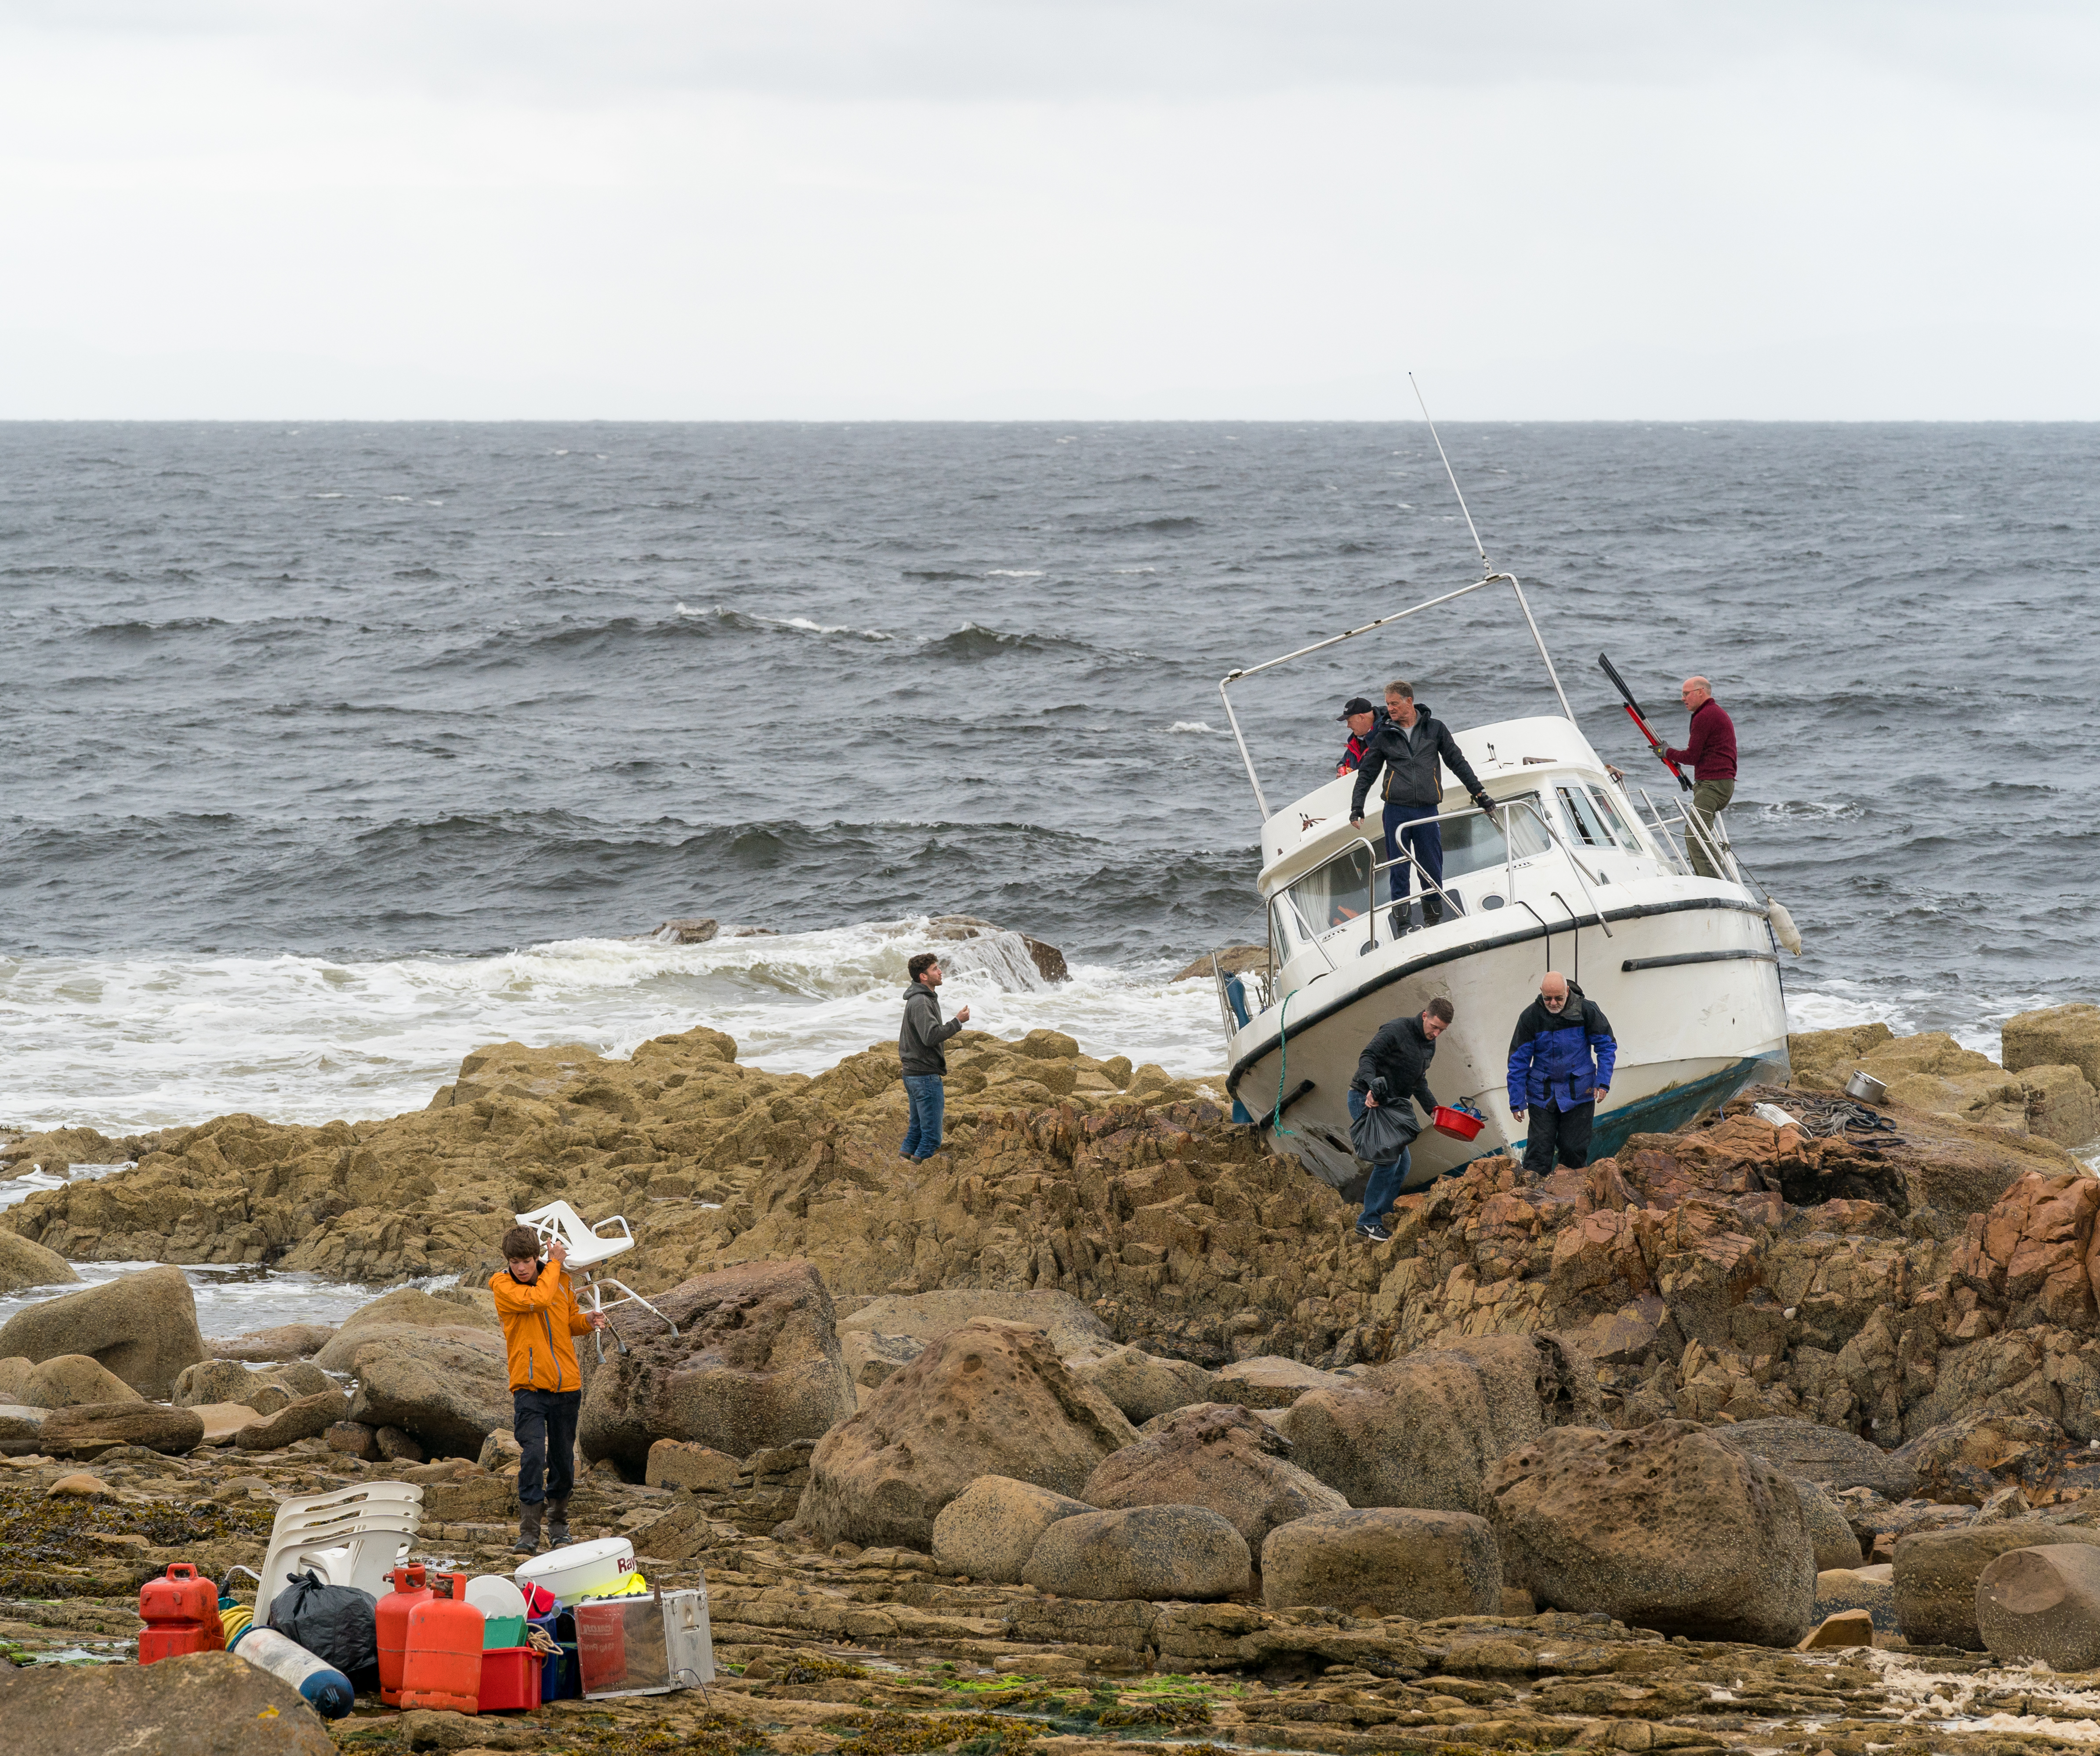 Coastguard, boat owners and friends salvage equipment before the boat breaks up on the rocks